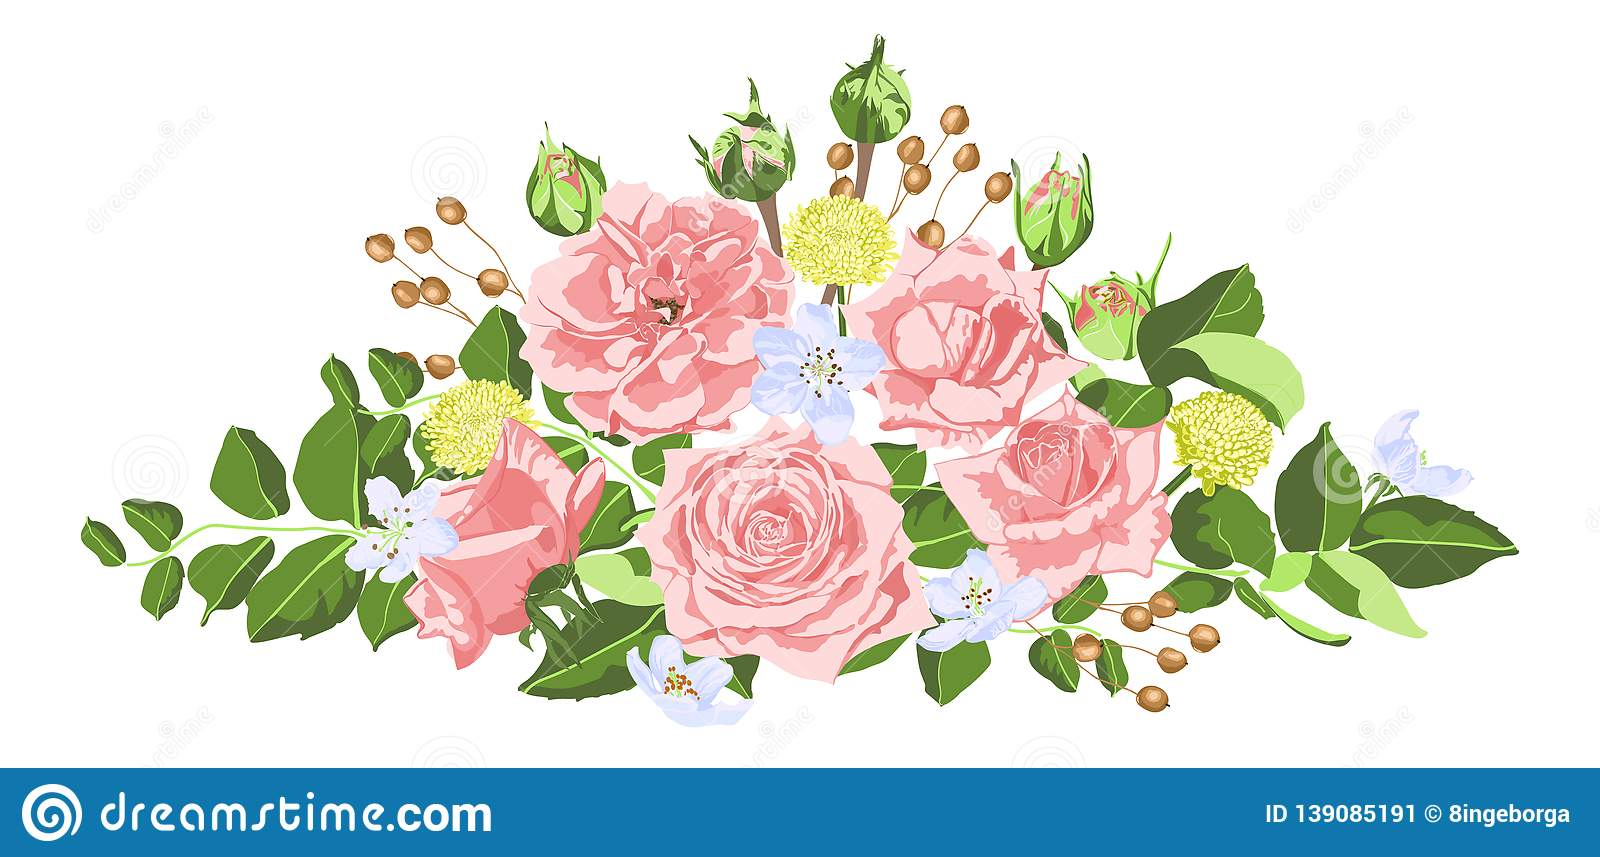 Vintage Roses Flowers Bouquet For Wedding  Stock Vector